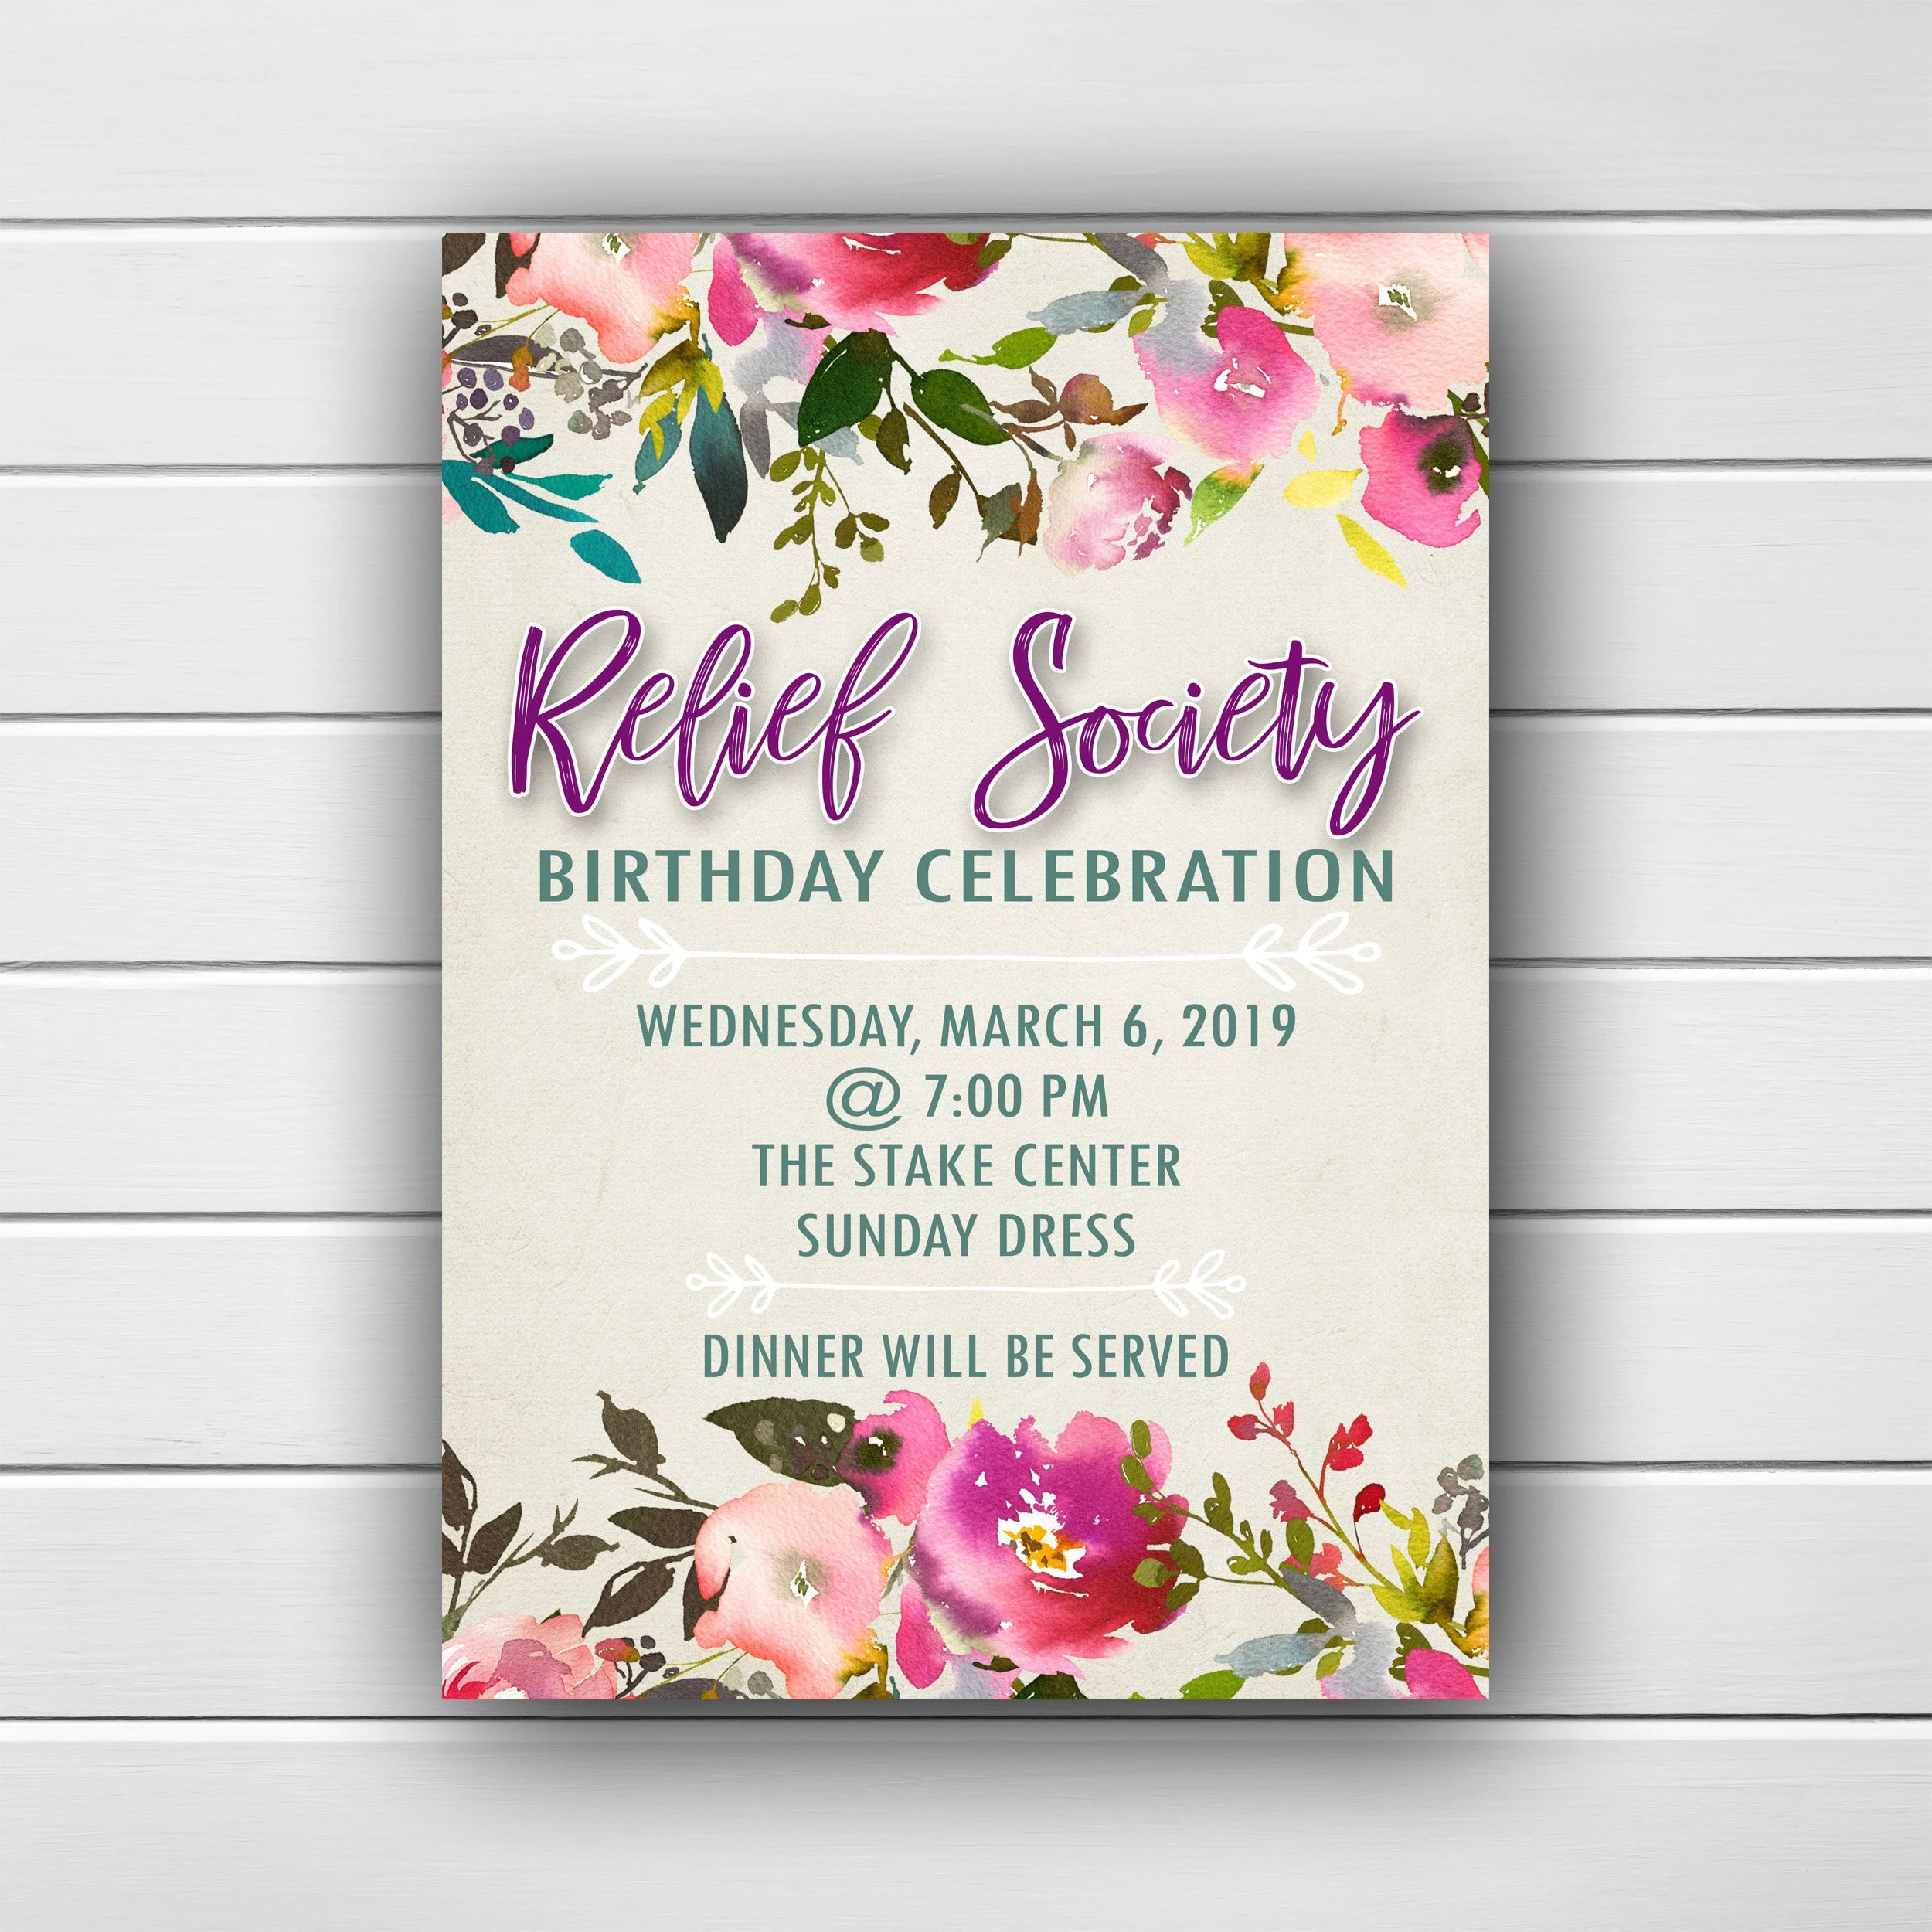 relief society birthday invitations lds relief society printable invitation relief society activity ideas relief society printable